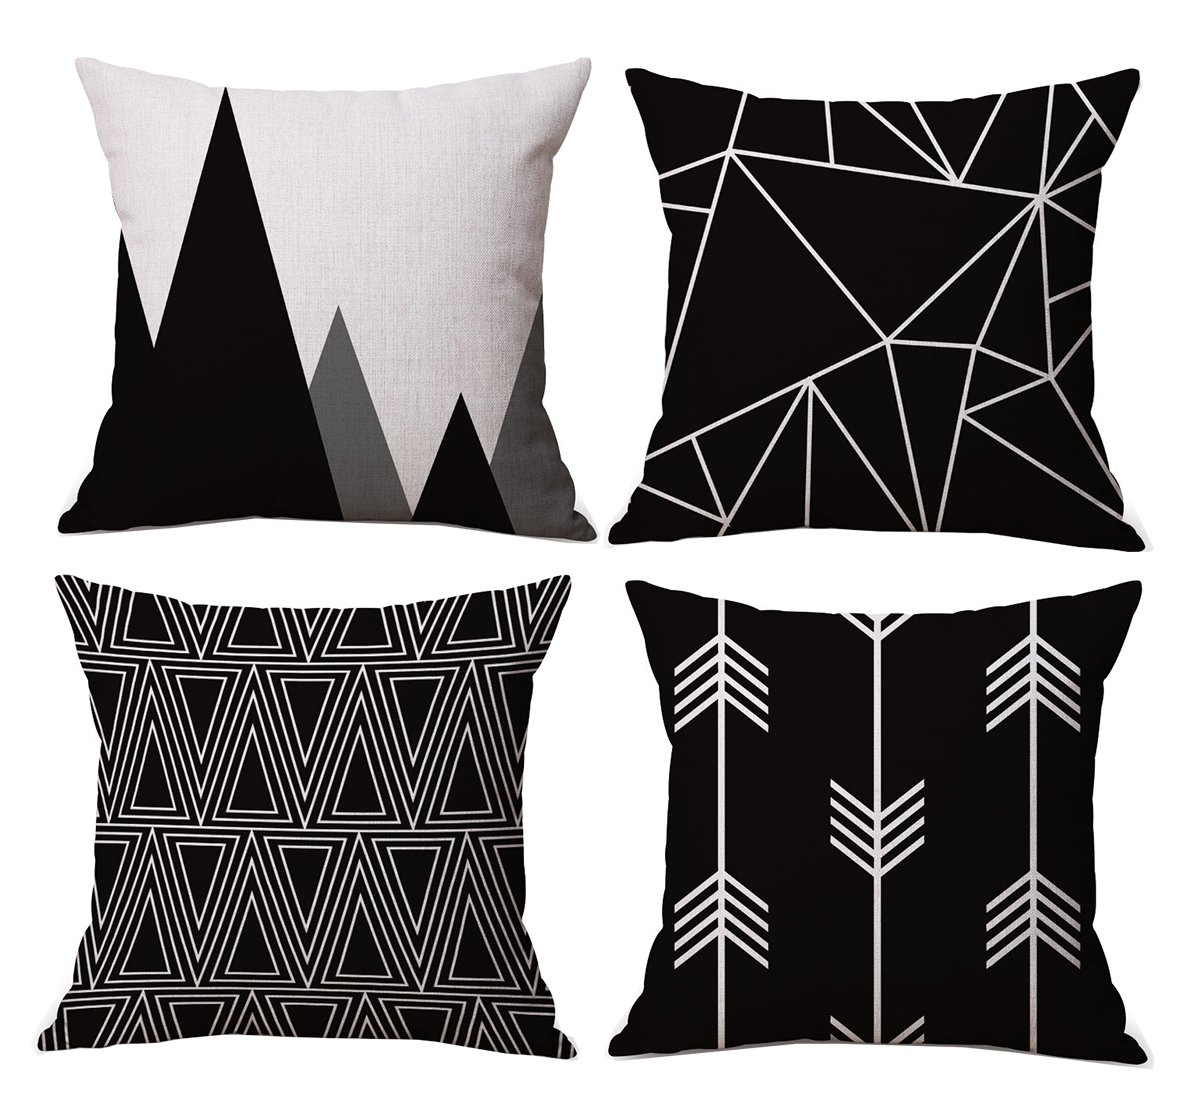 Cotton Triangle Pillow Cases Sofa Cushion Square Pillow Covers Set of 4